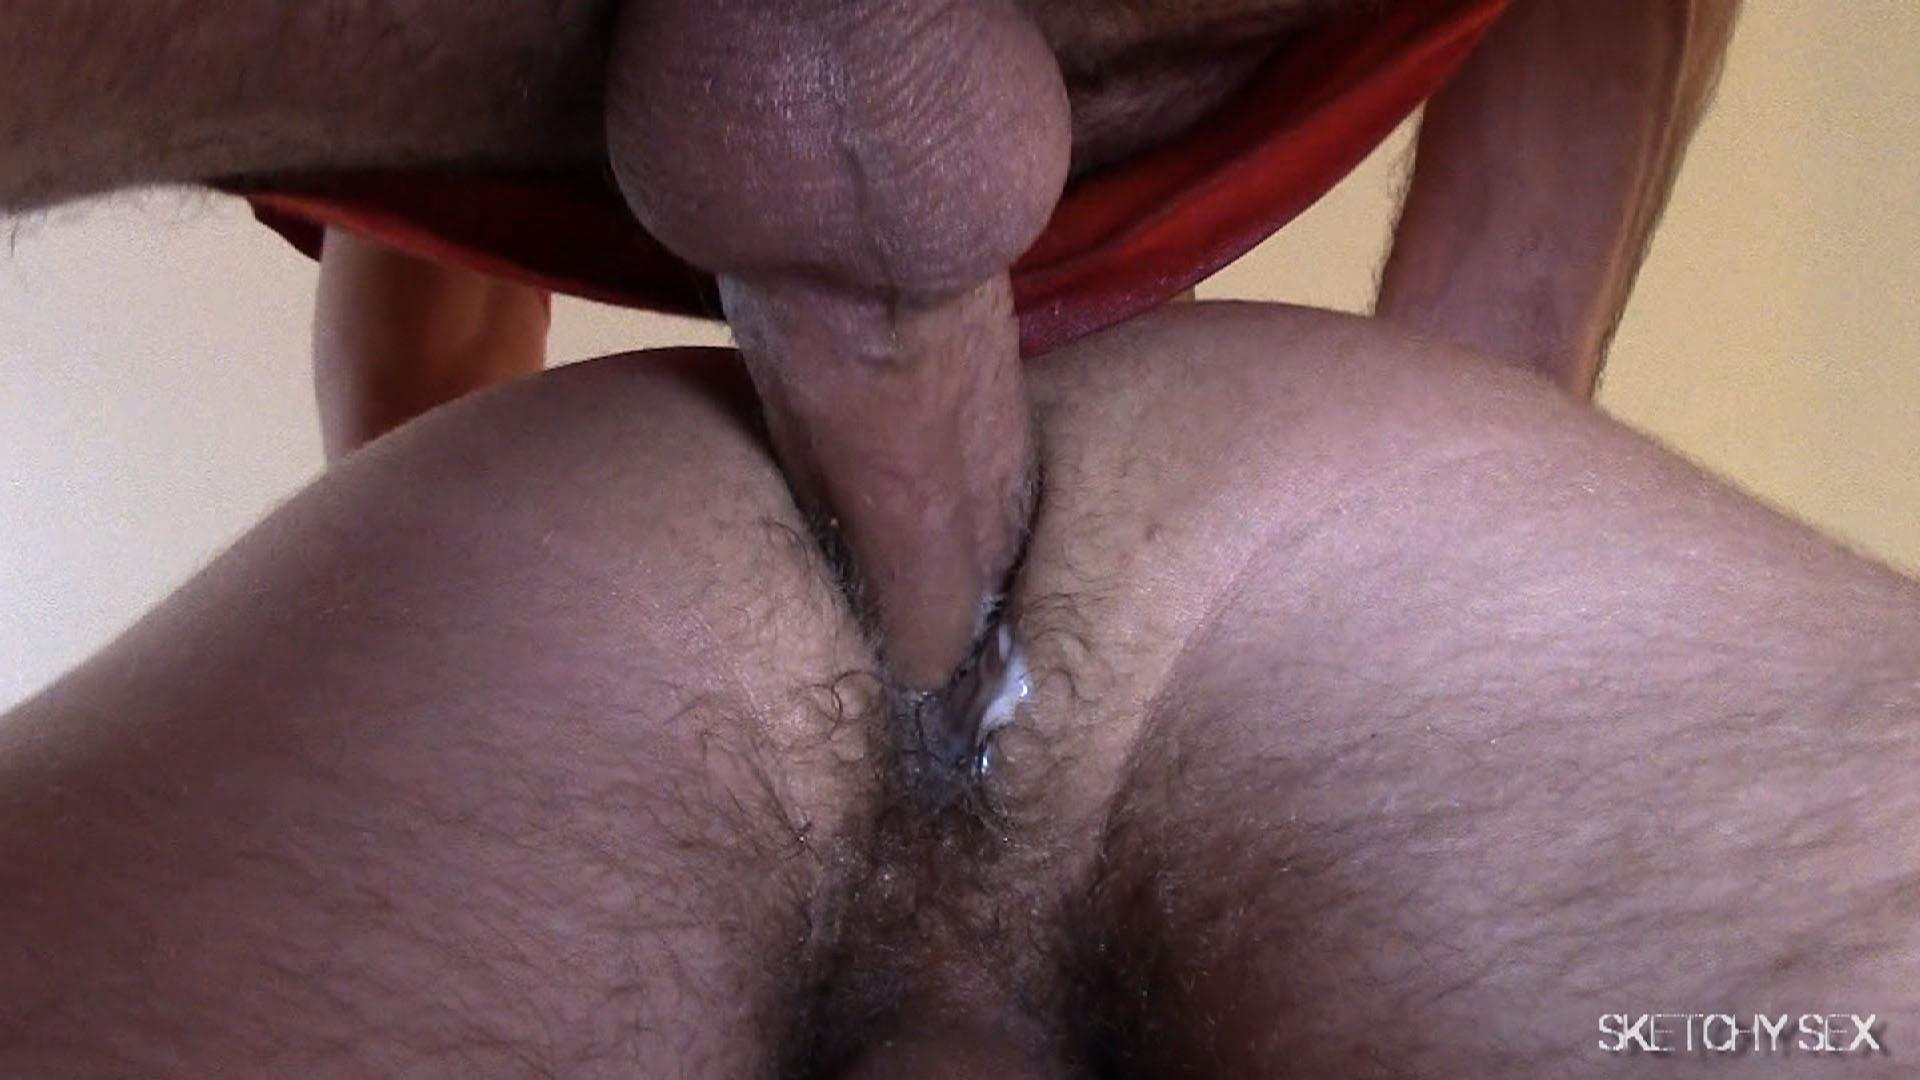 gay sex unclean ass